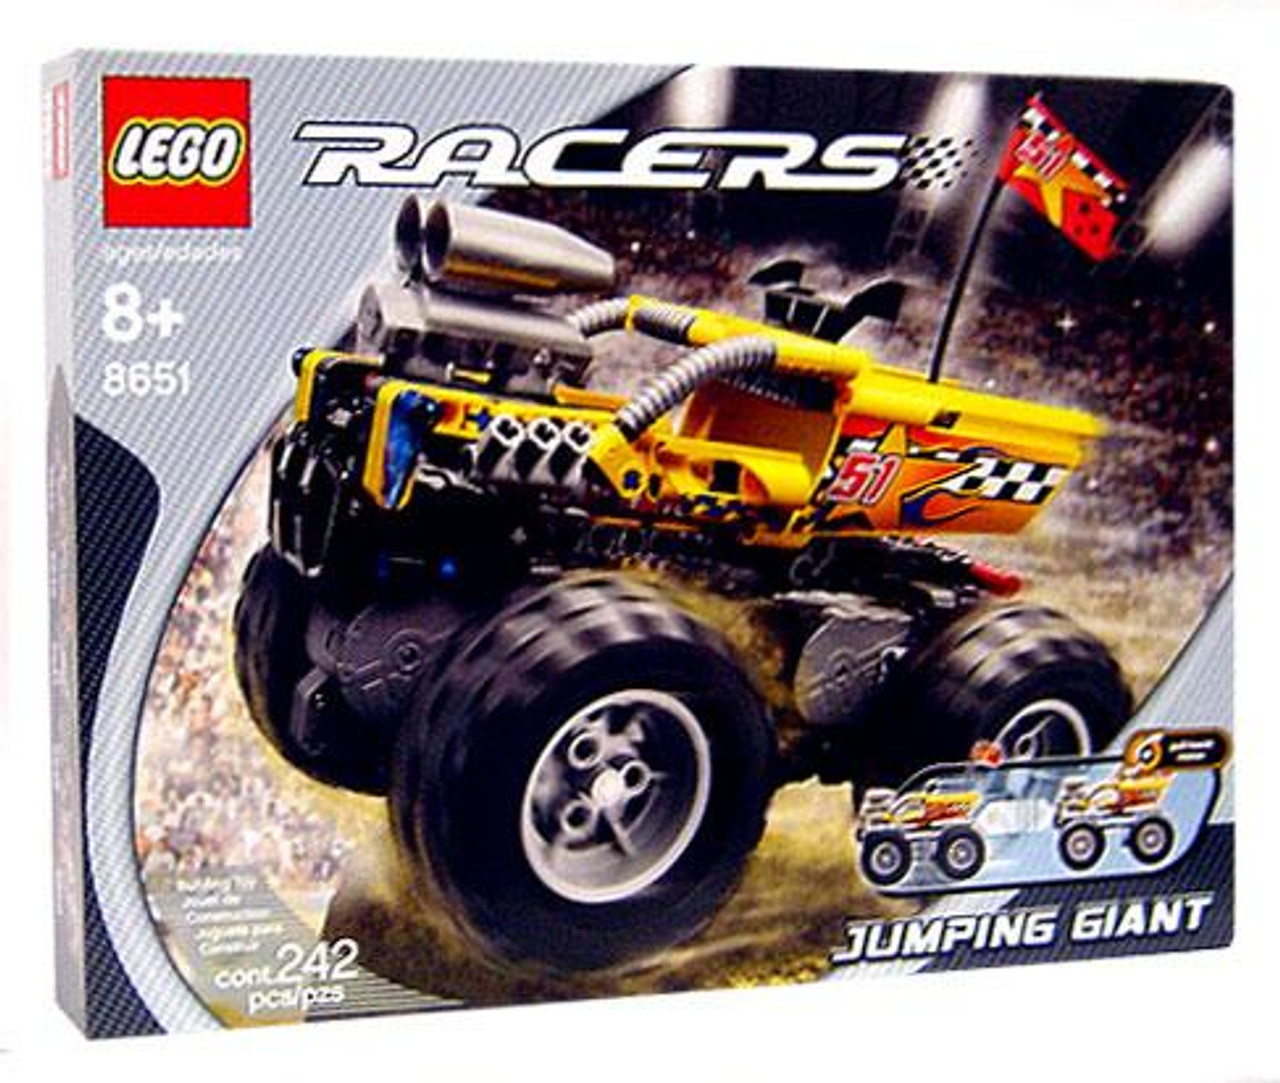 LEGO Racers Jumping Giant Monster Truck Set #8651